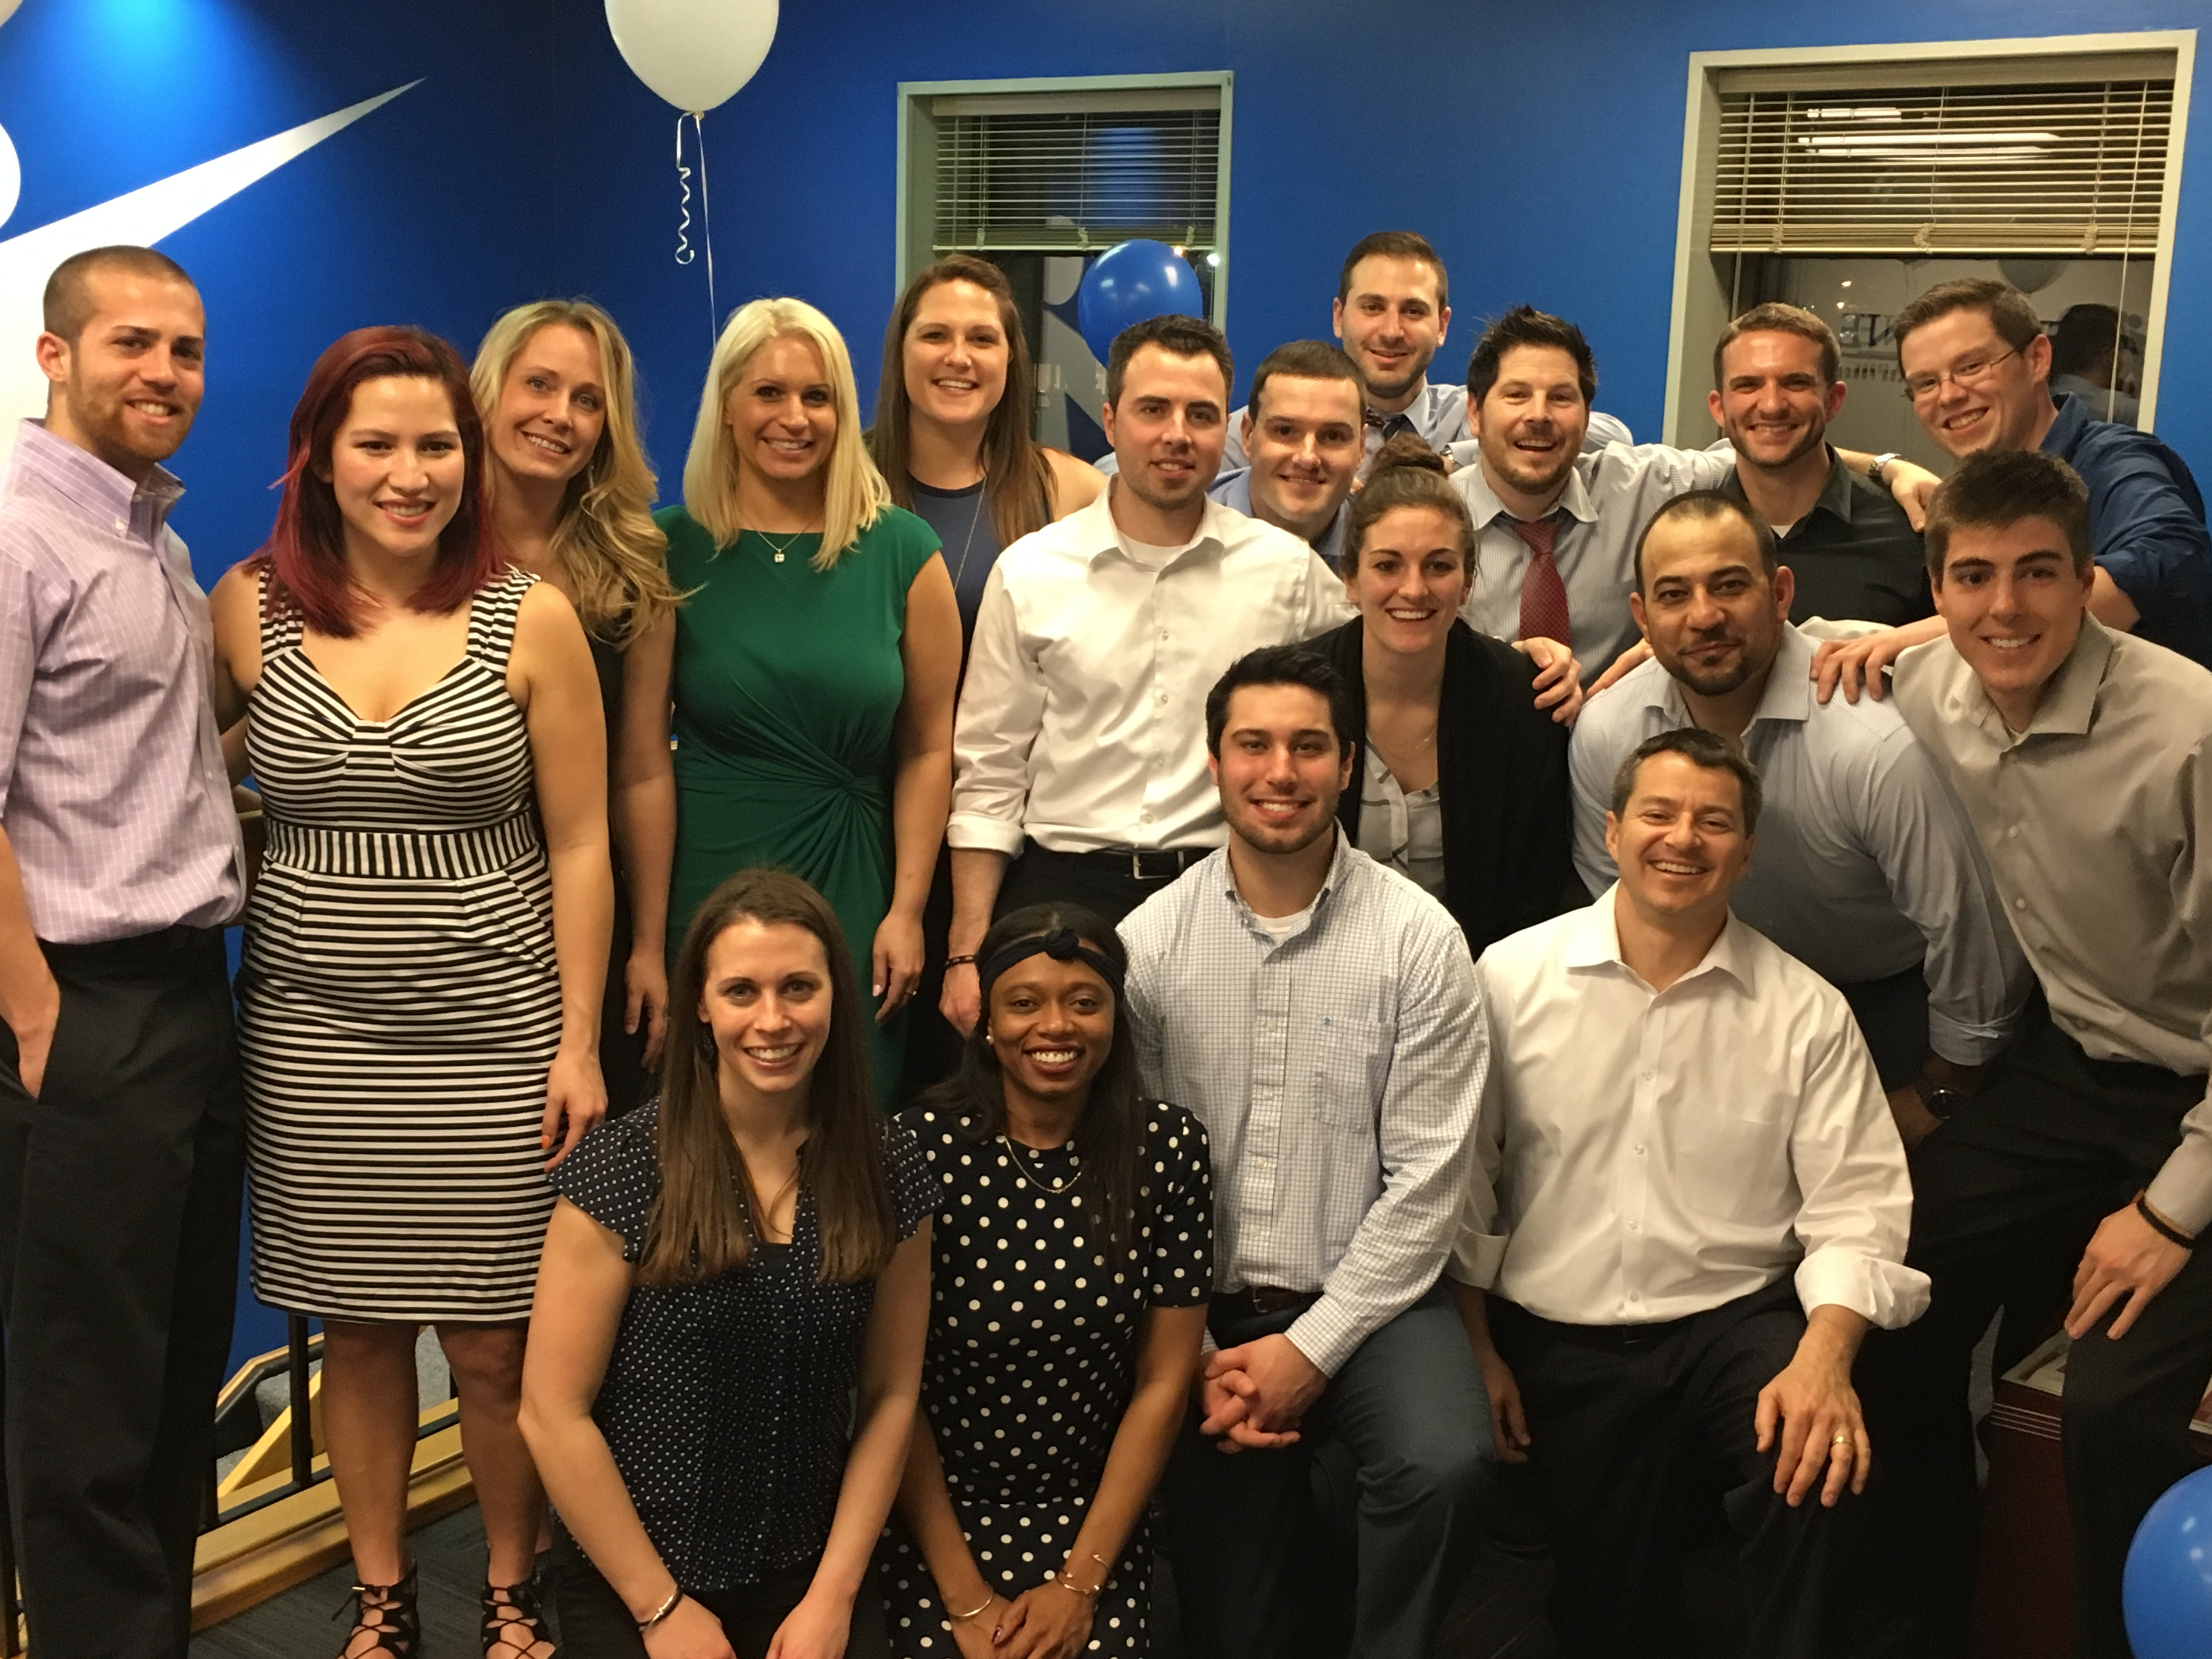 Treeline Inc celebrated 15 years in business